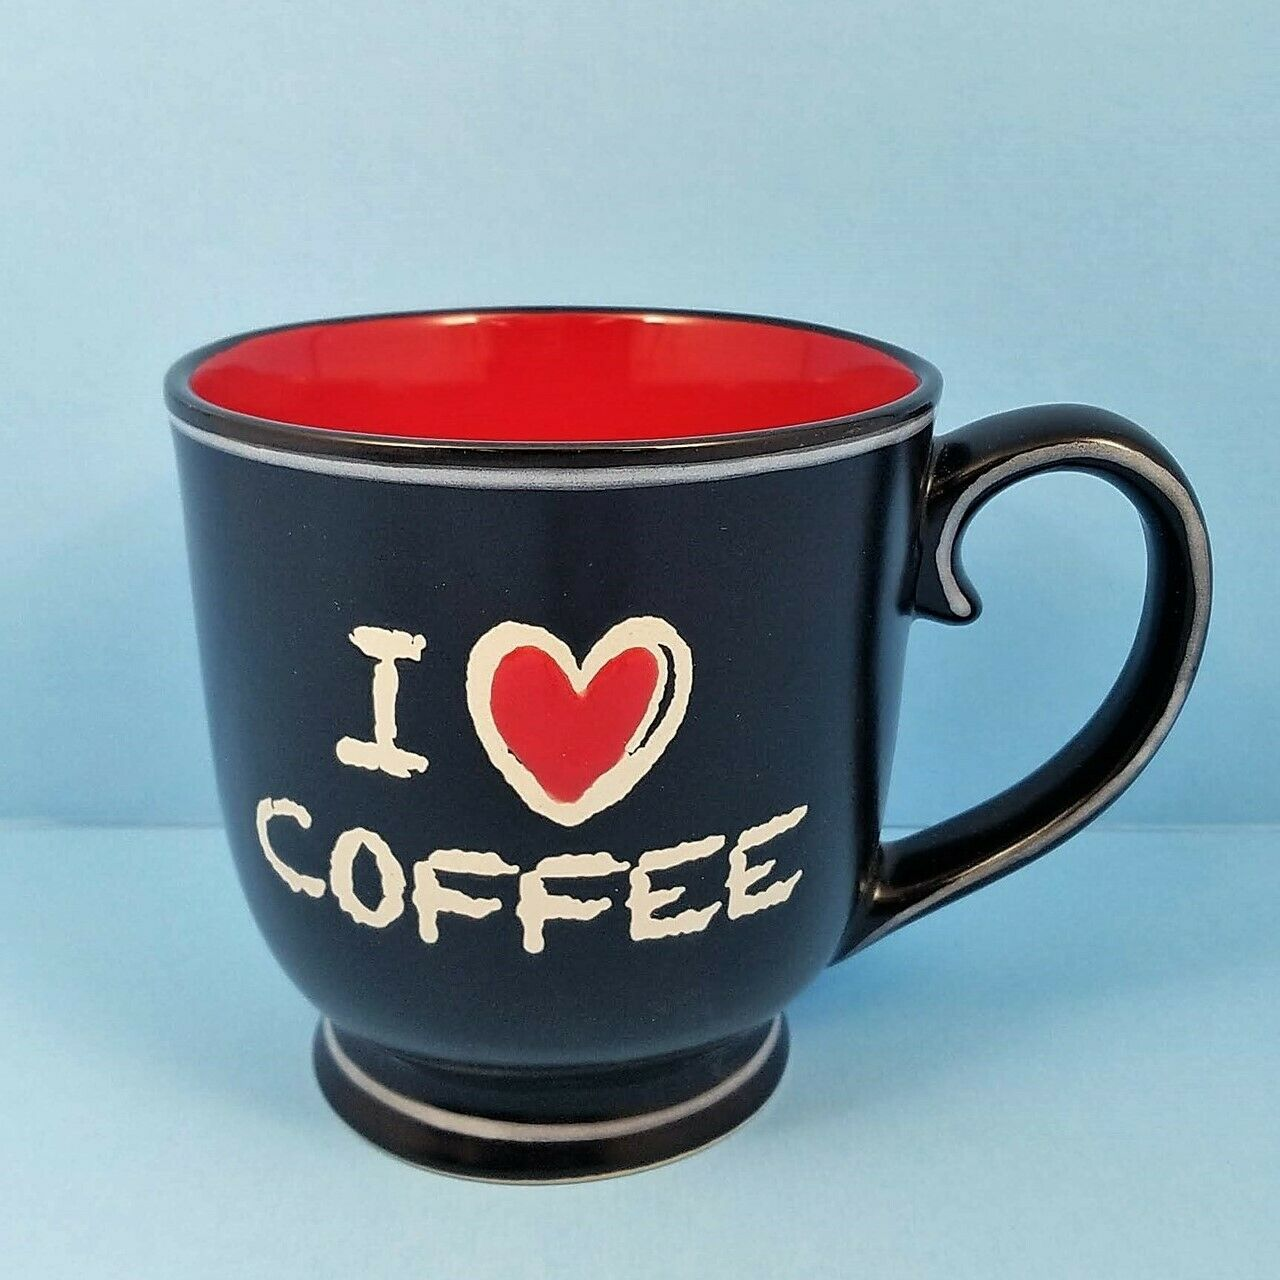 Chalkboard Mug Cup I Heart Coffee by Blue Sky Spectrum 17oz Black Red